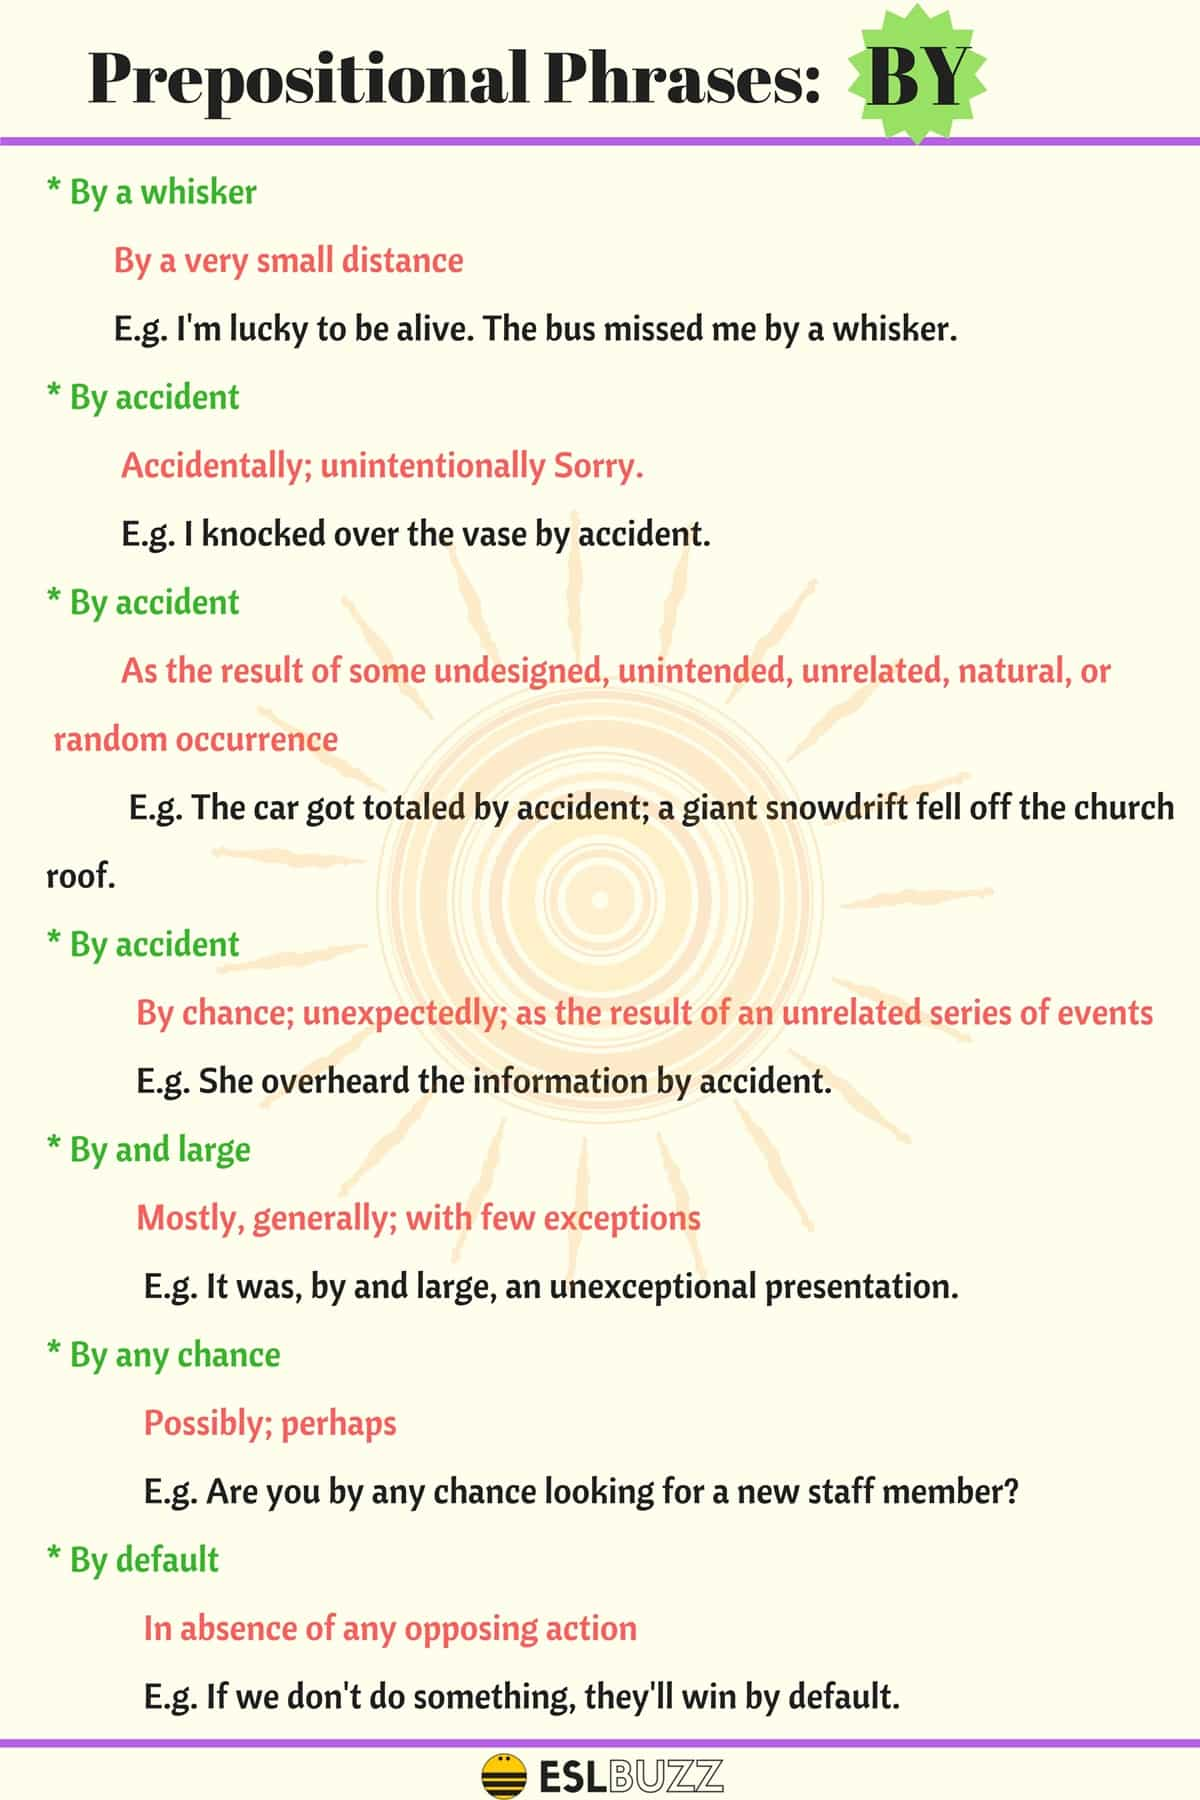 Common Prepositional Phrases with BY